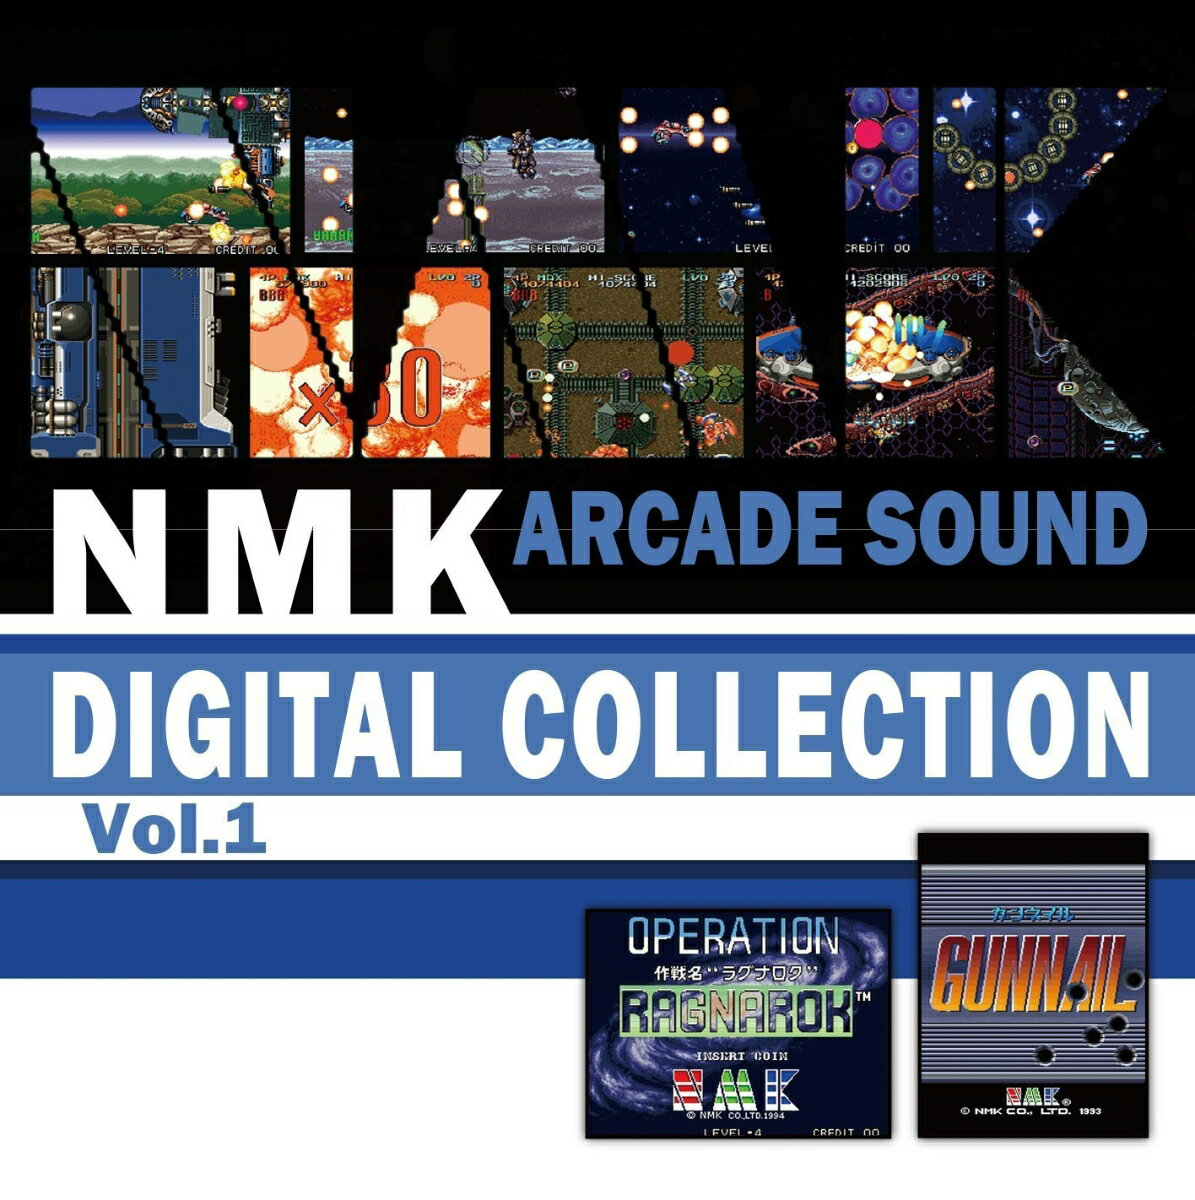 NMK ARCADE SOUND DIGITAL COLLECTION Vol.1 [ (ゲーム・ミュージック) ]